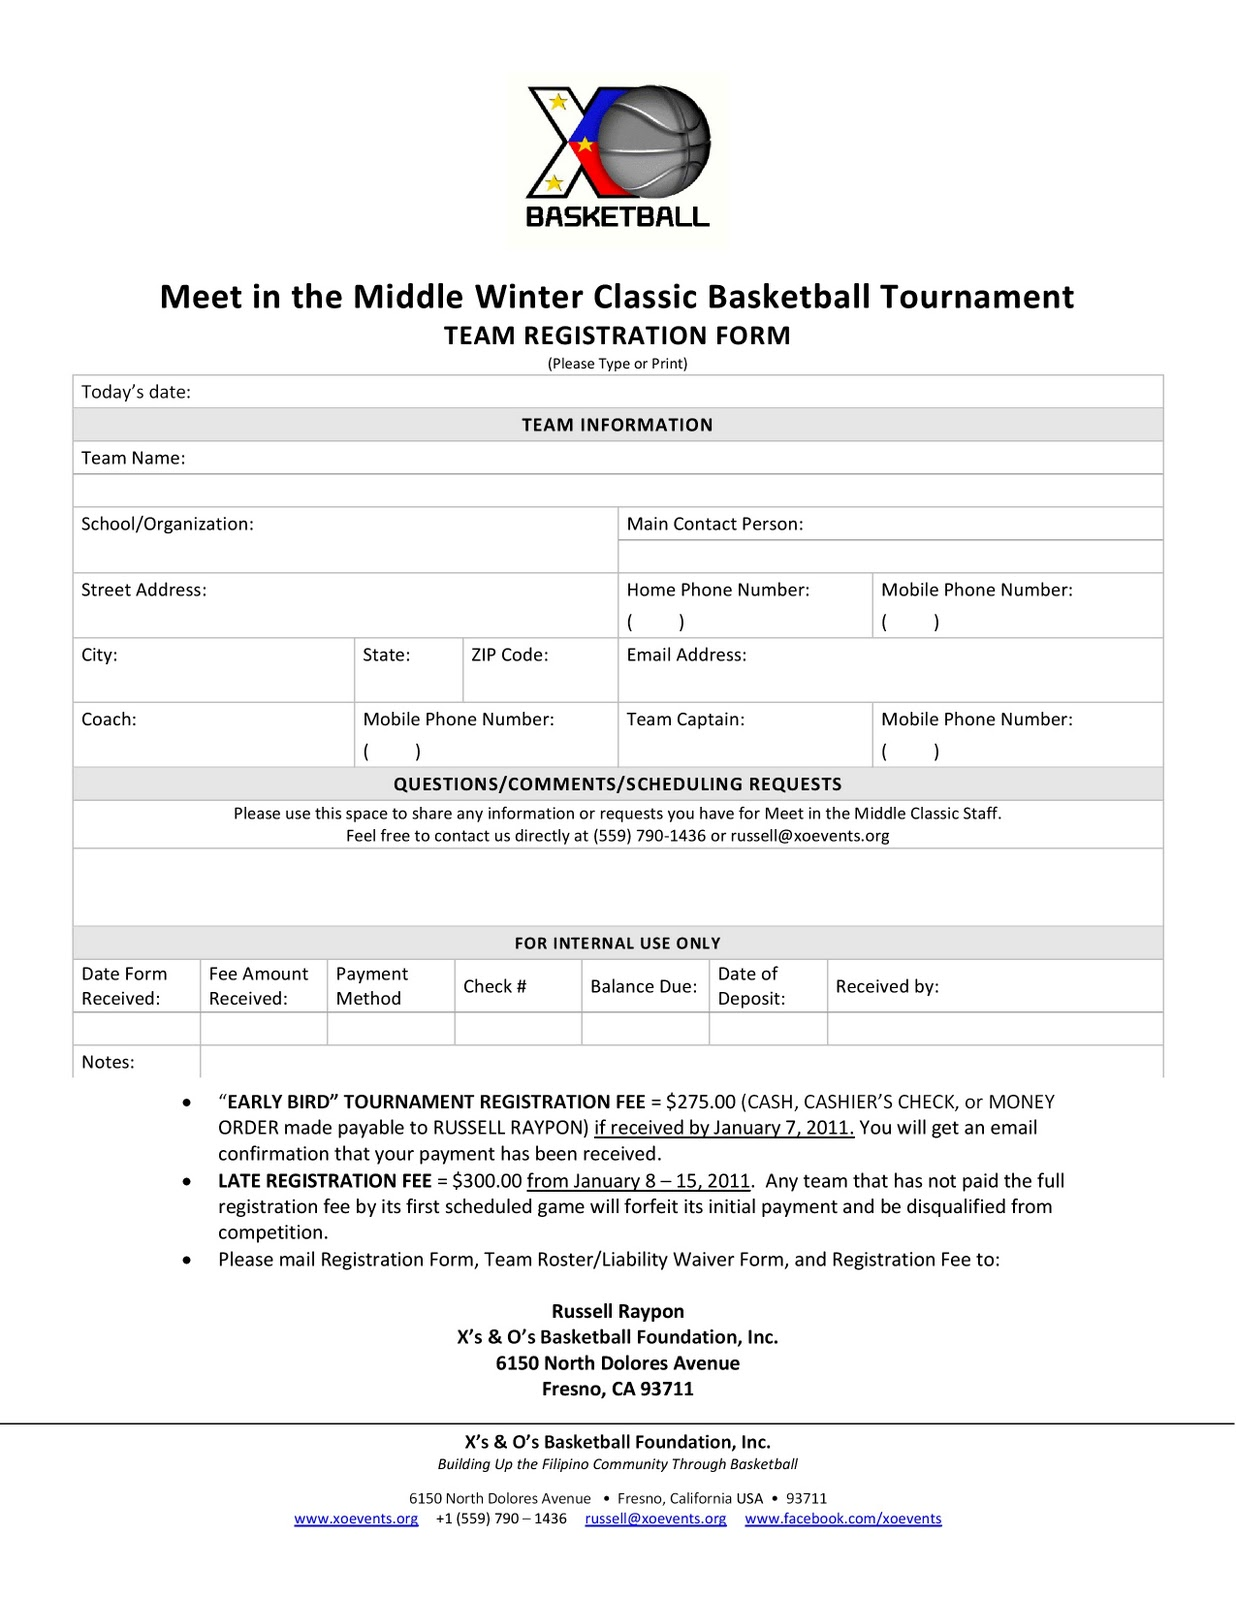 The coachs box by xs os basketball december 2010 downloadable tournament forms pronofoot35fo Choice Image